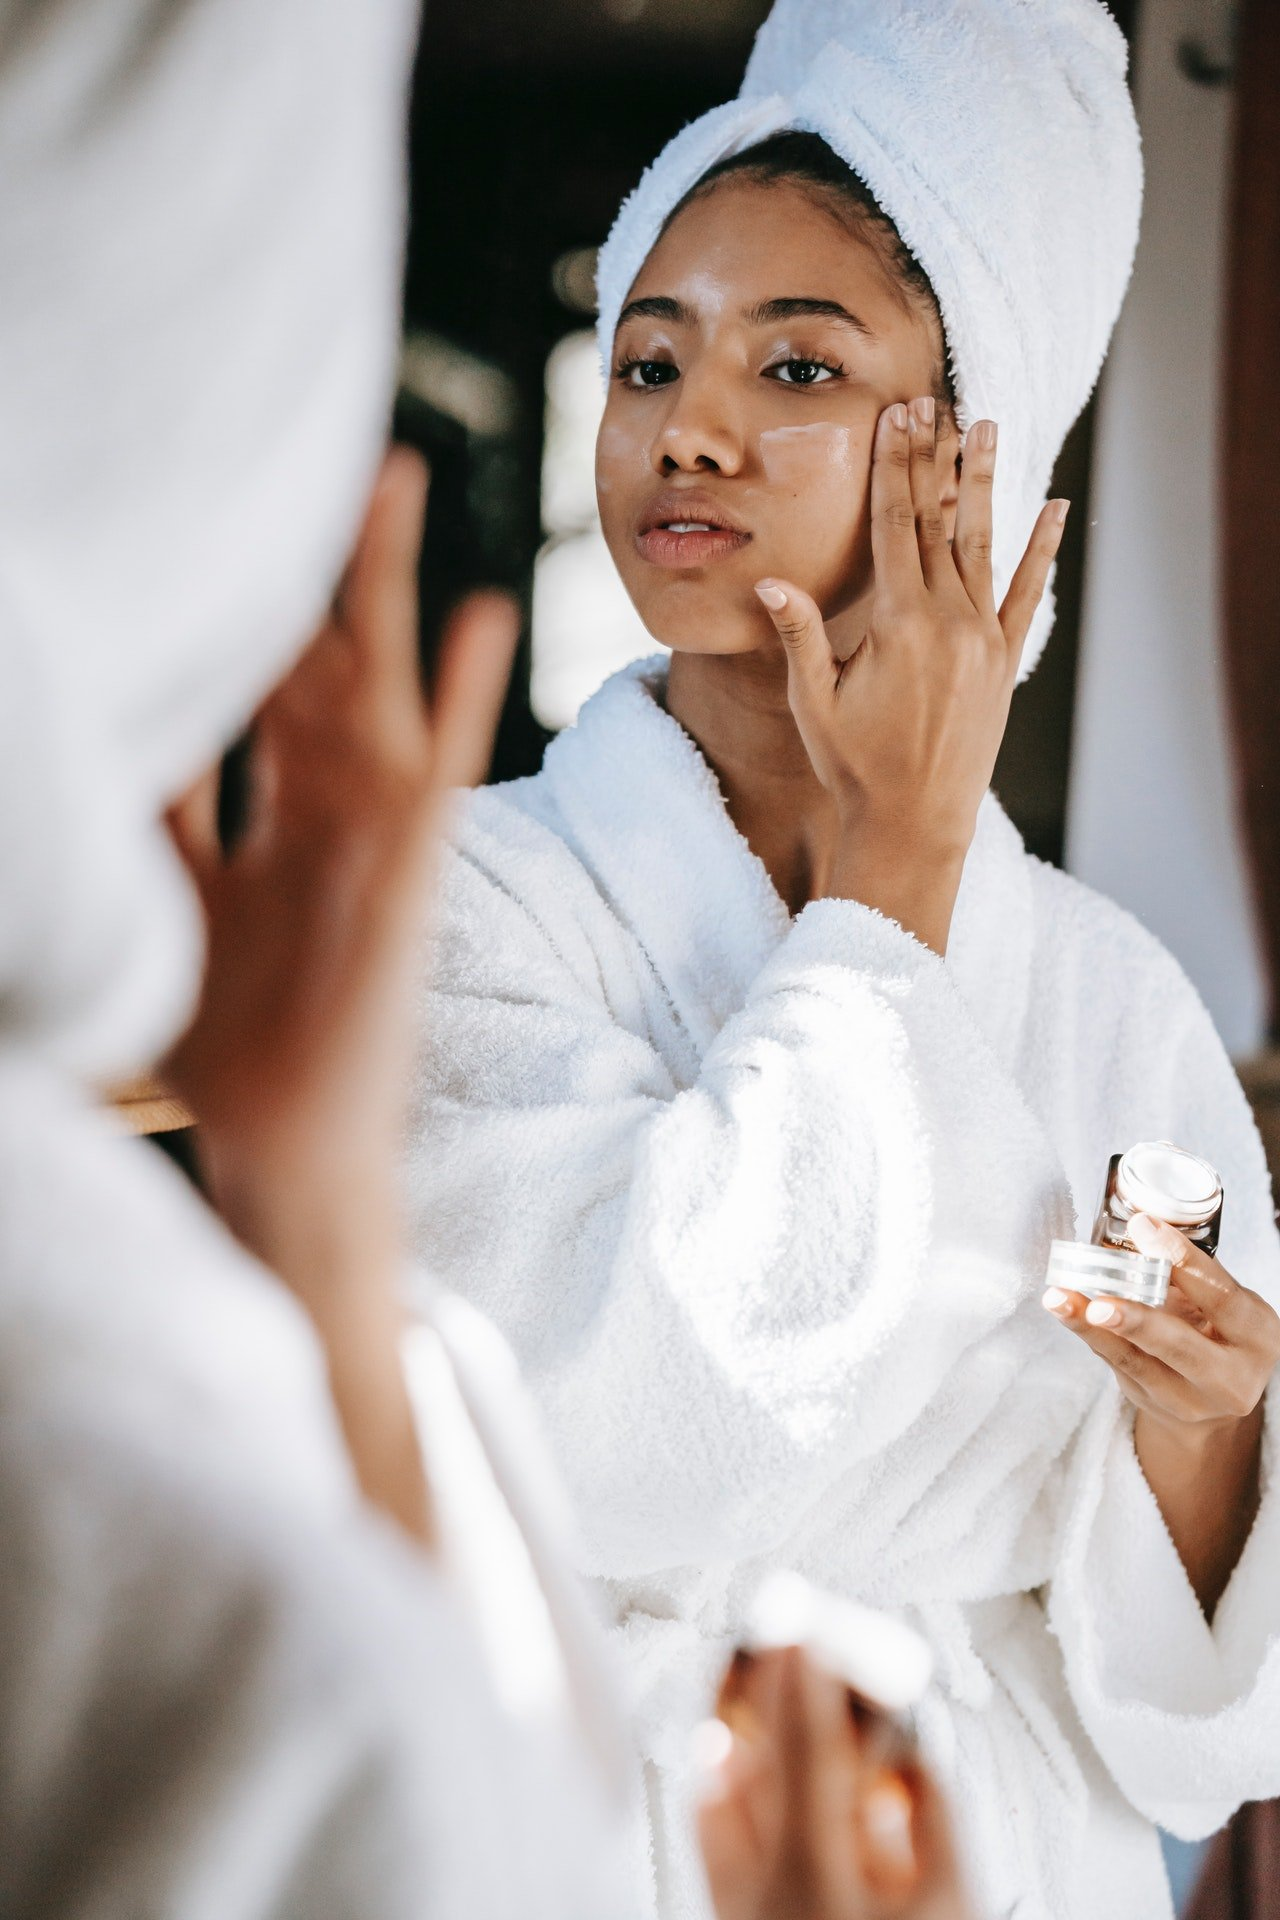 Using CBD beauty products as a Facelift Therapy